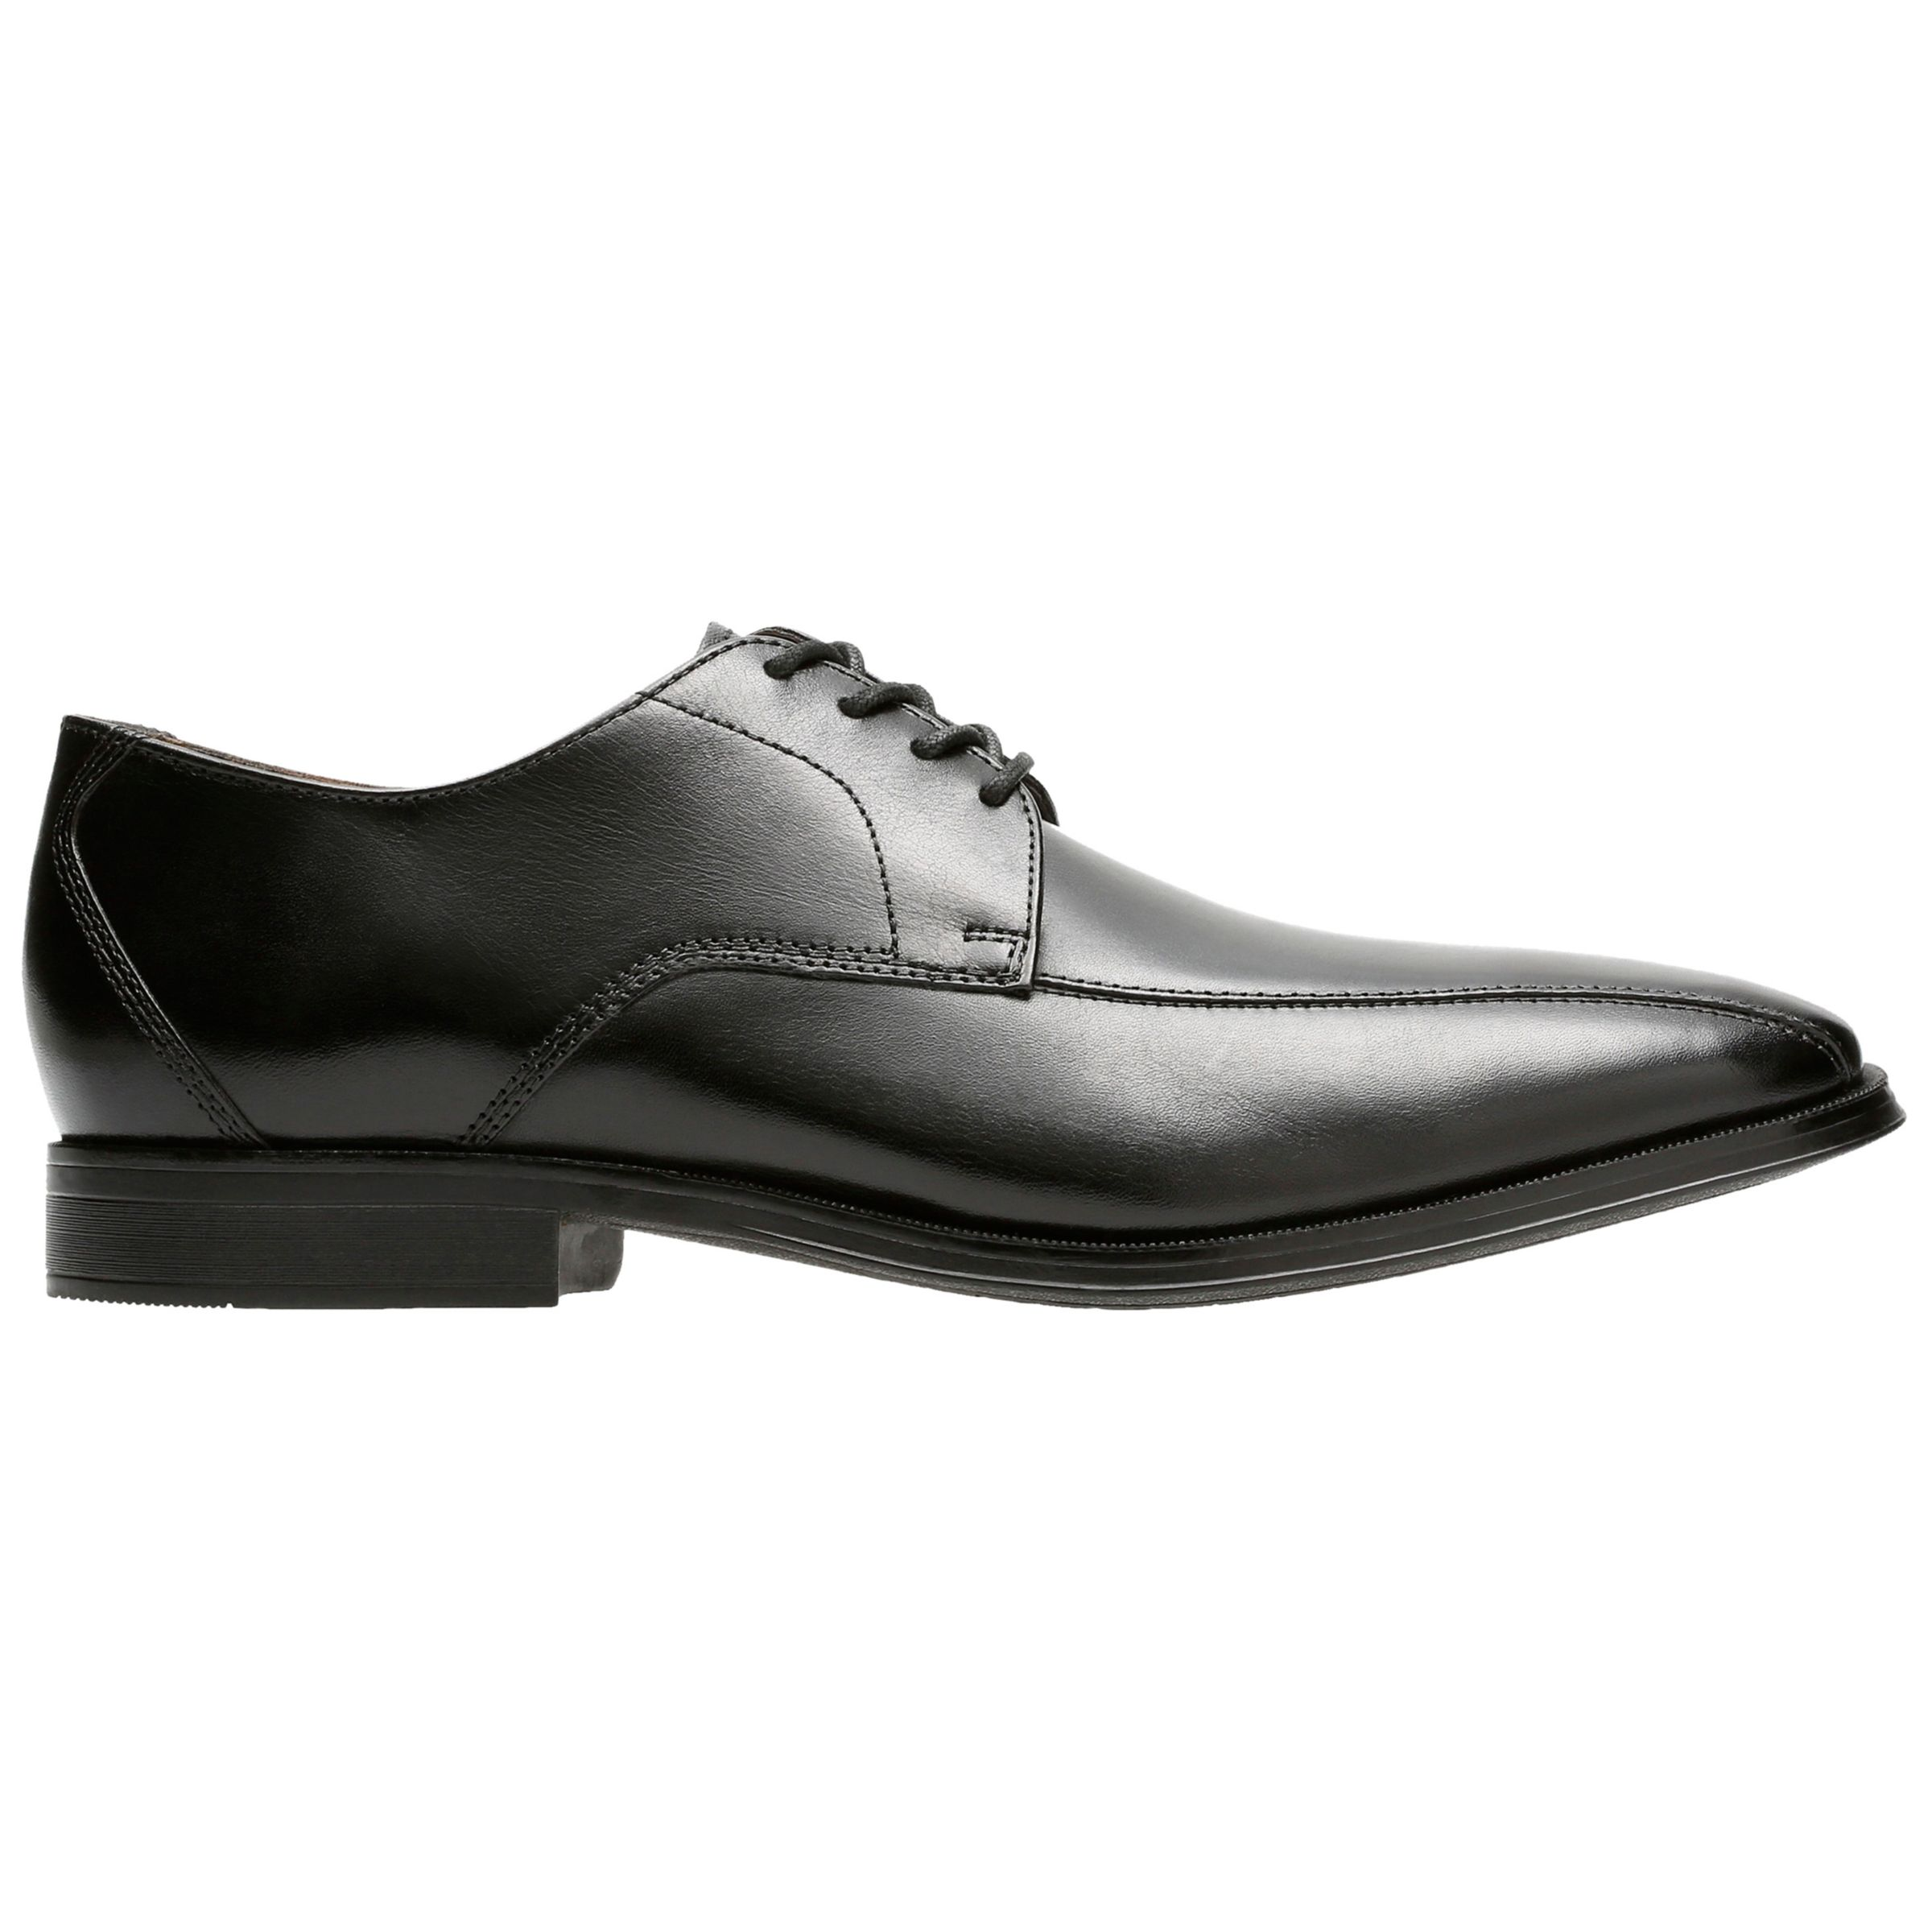 65c80d6f5f37 Clarks Gilman Mode Leather Derby Shoes